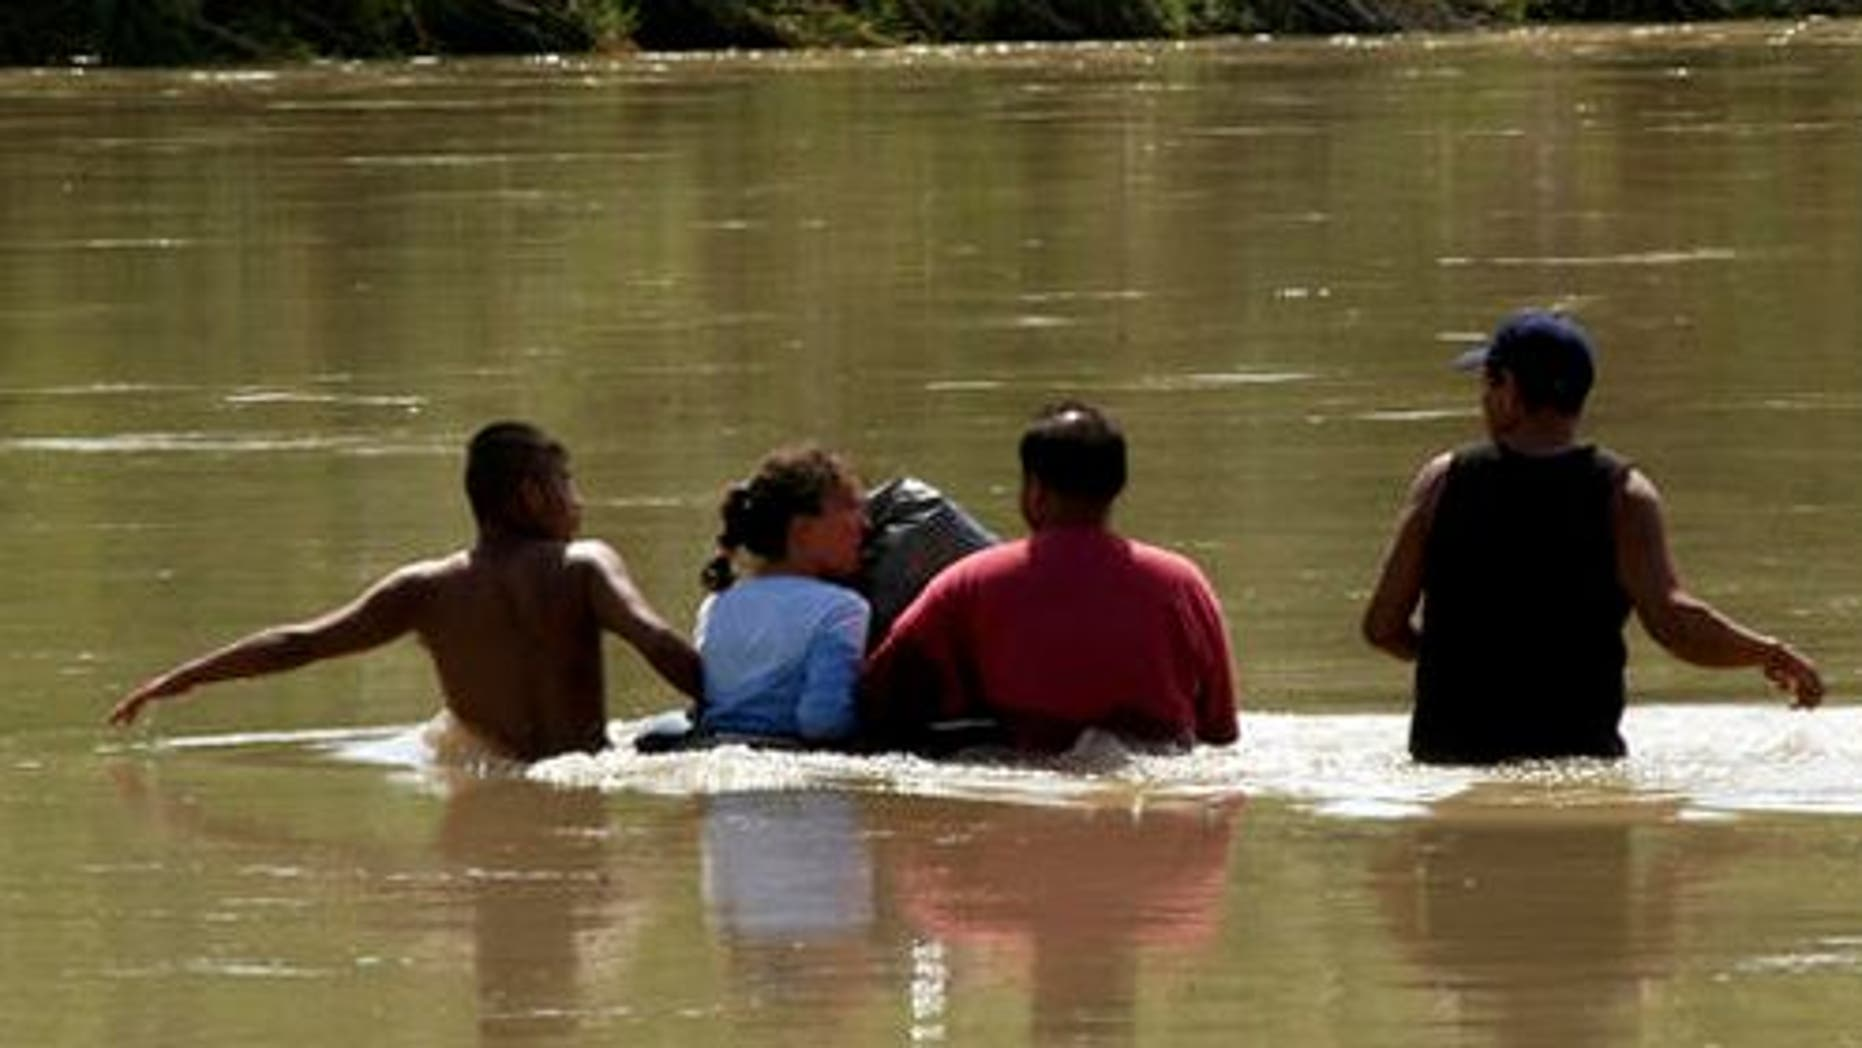 "Unidentified migrants, who did not wish to give their names, from the state of Jalisco, Mexico, cross the waters of the Rio Grande, with the help of two ""coyotes"" or  smugglers, in an attempt to reach the U.S. border, in Nuevo Laredo, Mexico on Wednesday, May 18, 2006. Migrants preparing to cross the border in Nuevo Laredo said they would prefer to climb walls than make dangerous trips through the desert into Arizona and New Mexico, routes that have become popular after U.S. authorities made it tougher to cross near San Diego and El Paso, Texas.   (AP Photo/German Garcia)"